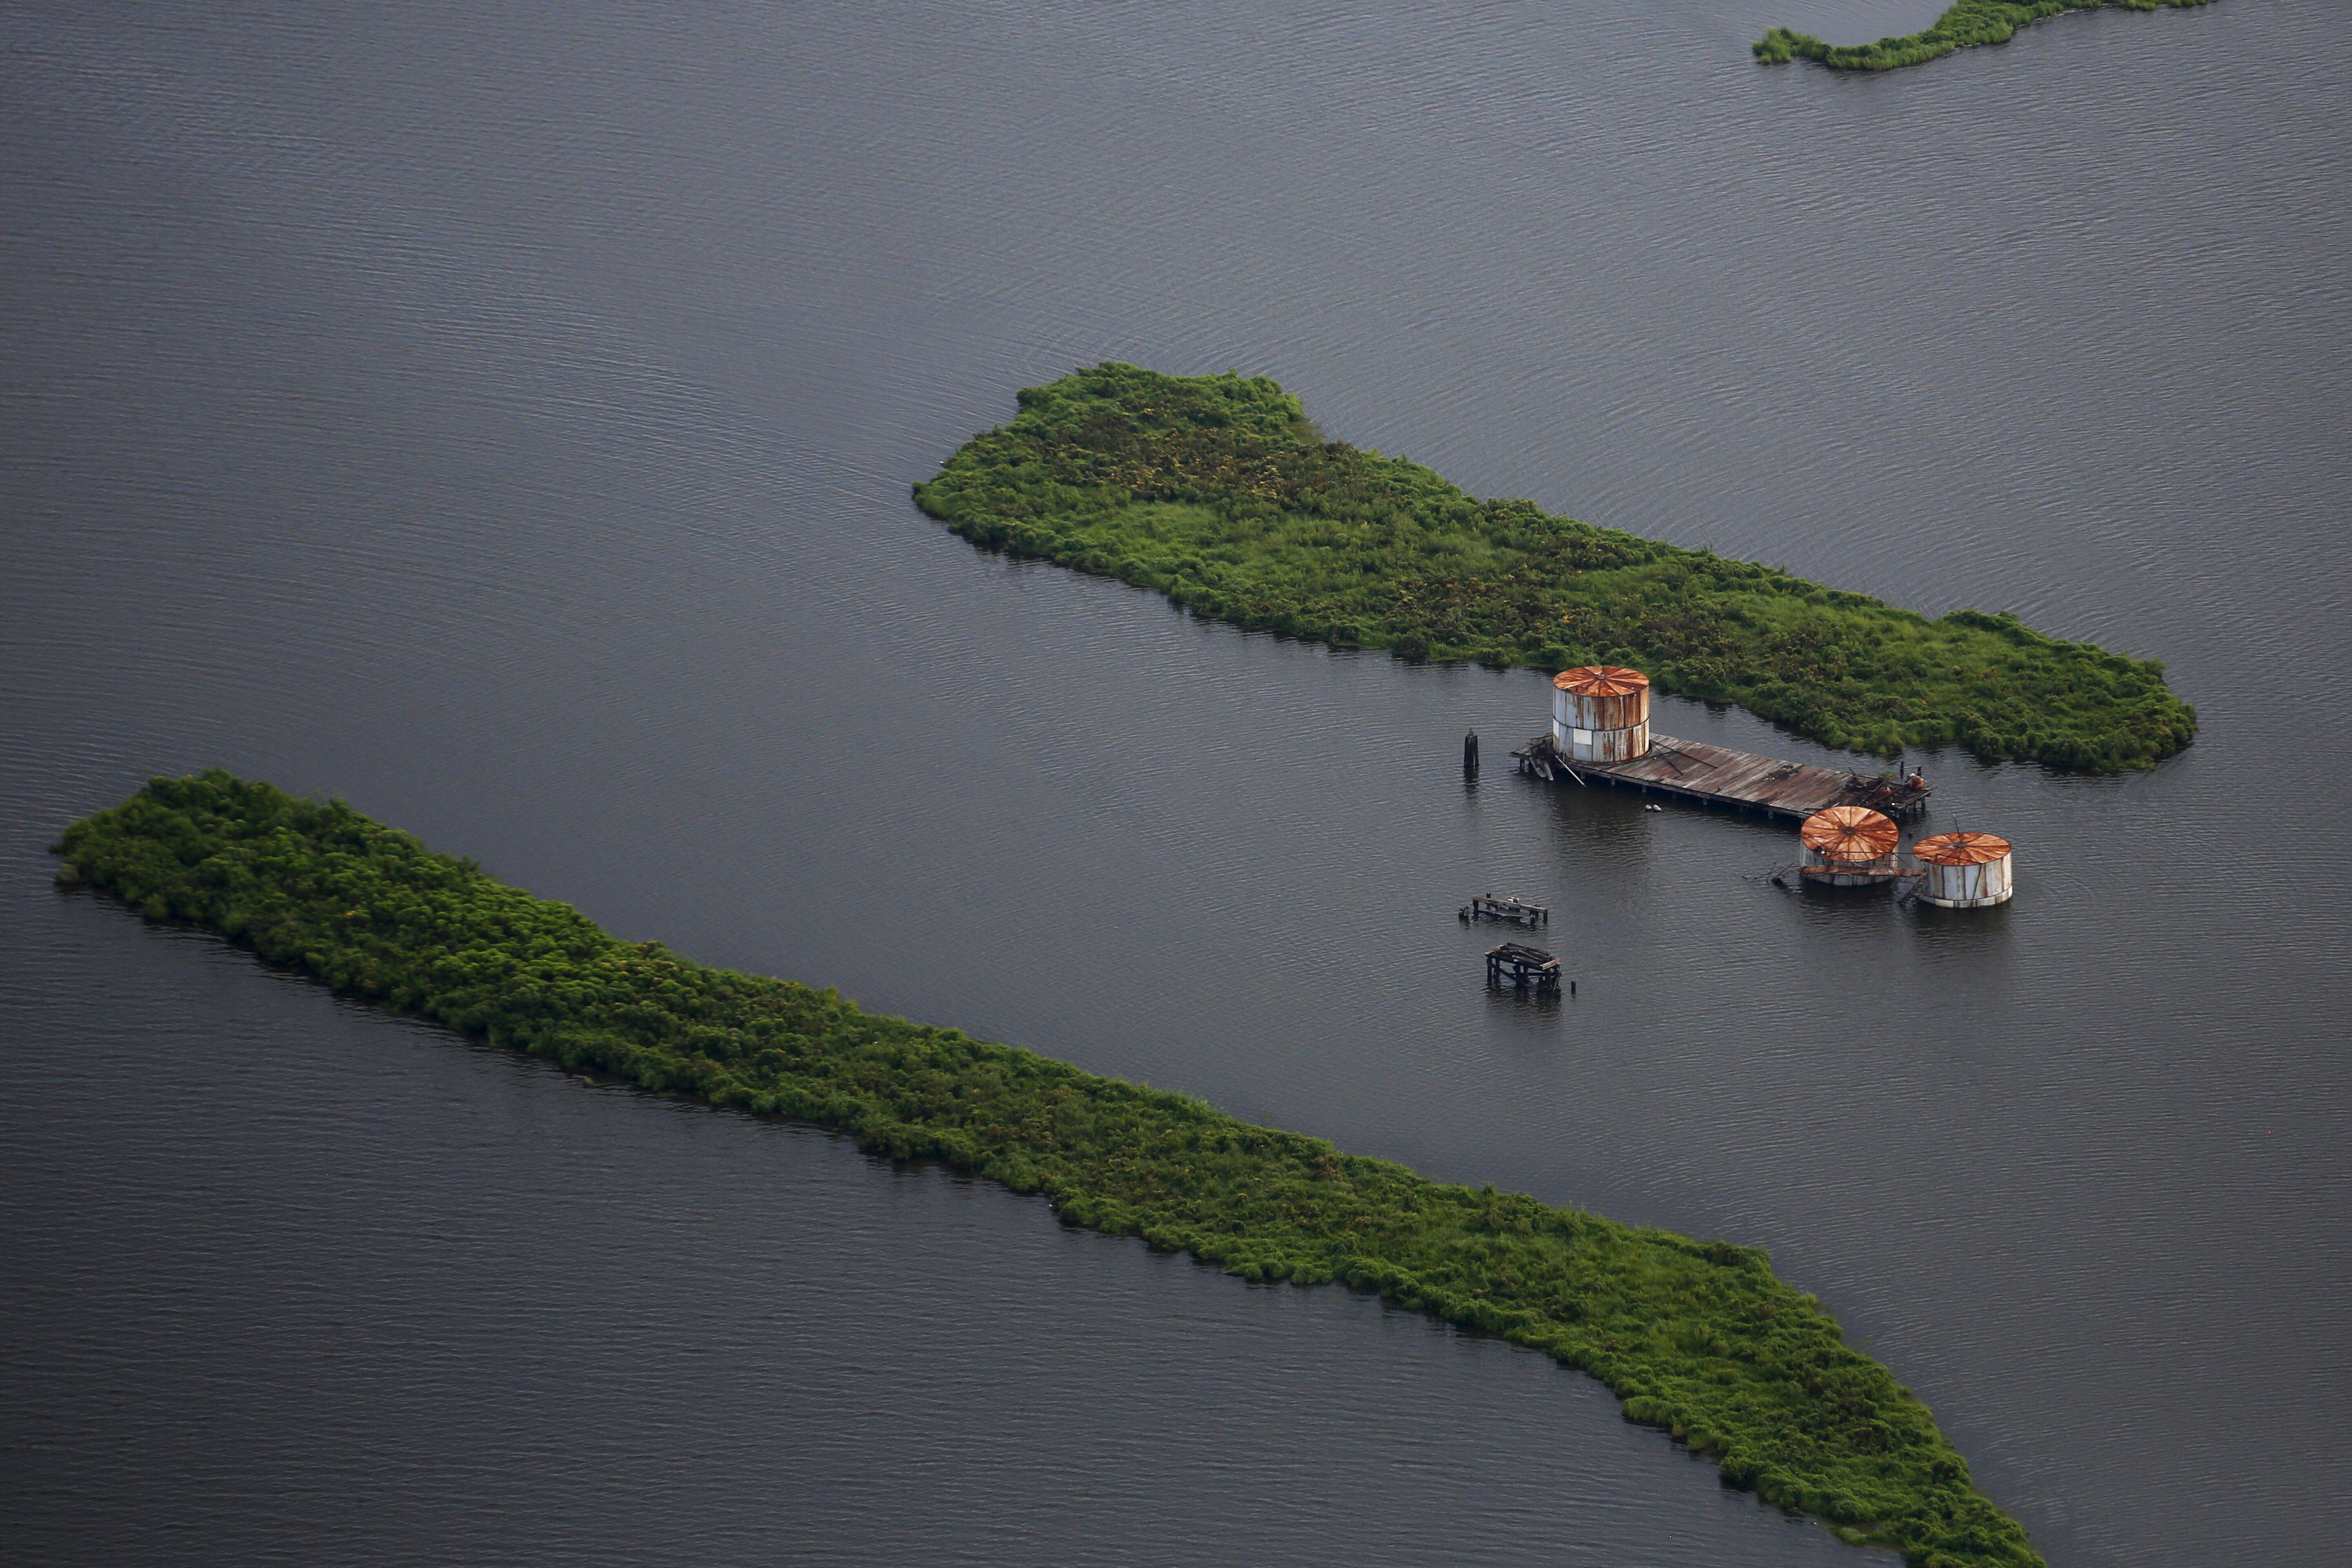 Old oil tanks are seen in an area affected by Hurricane Katrina on the Mississippi River delta.